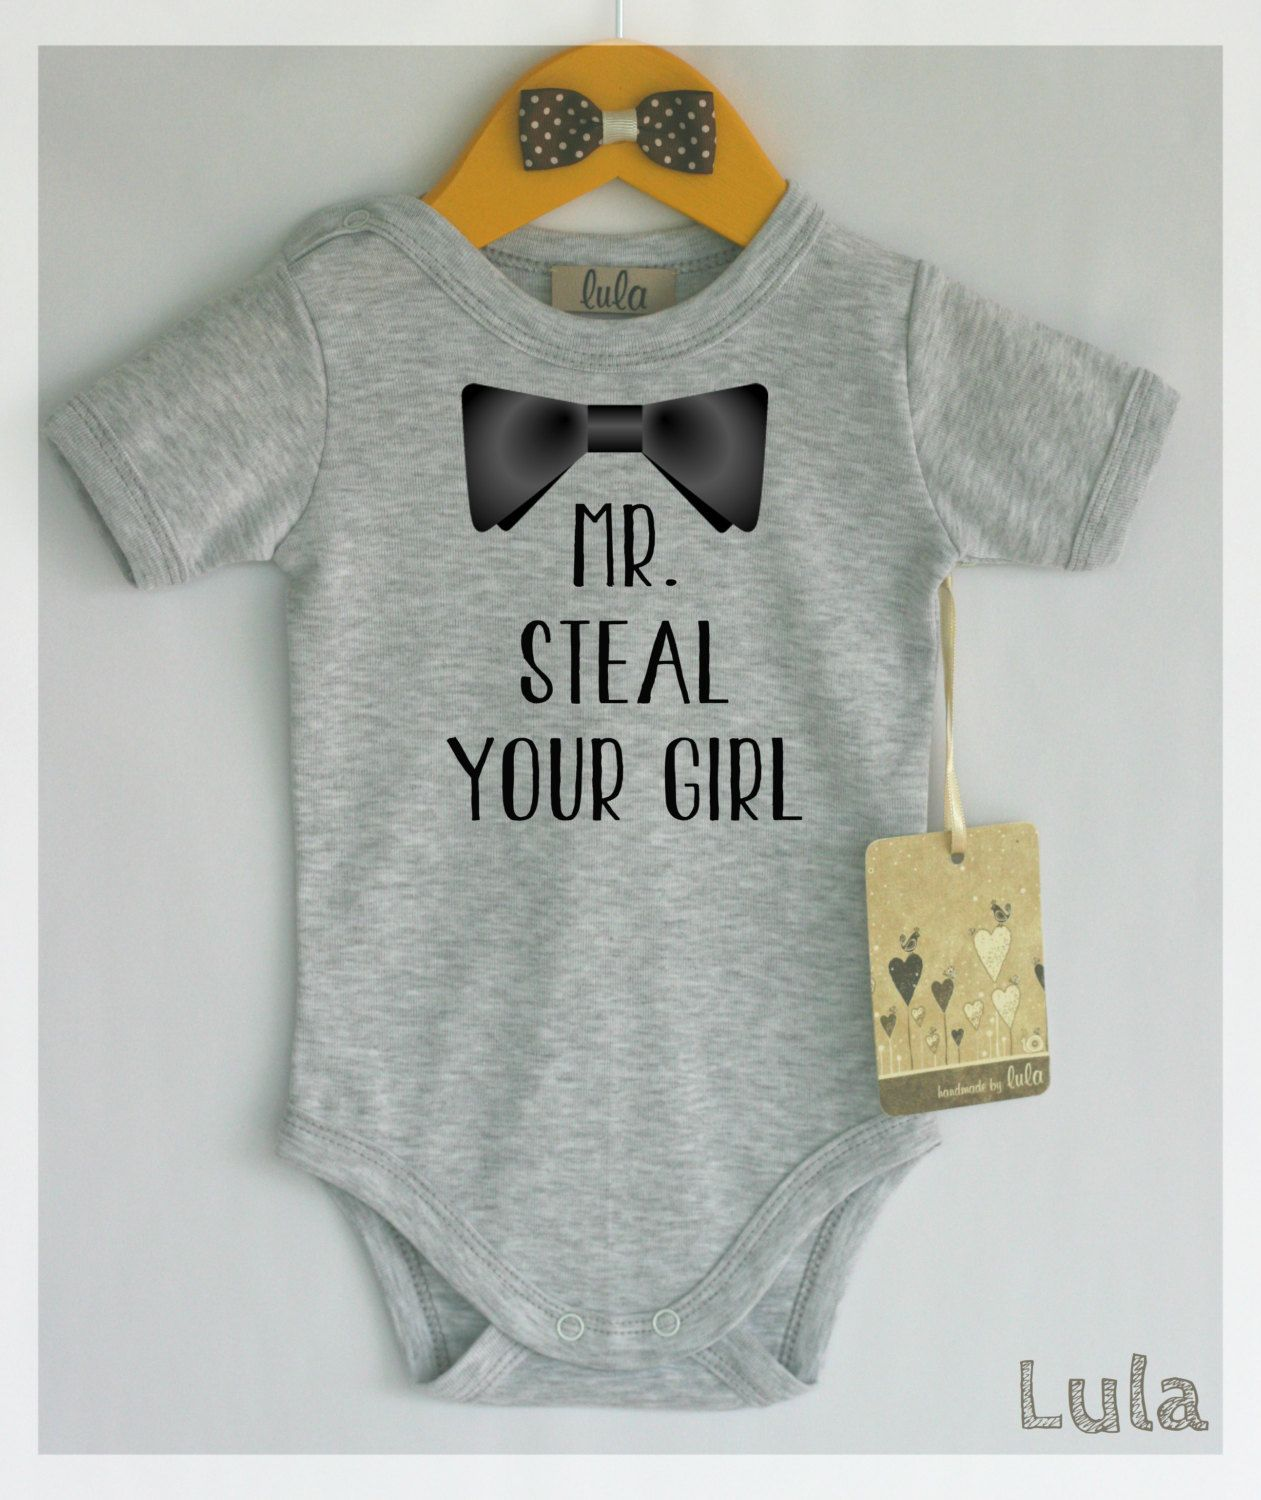 d2db9bbd3c88 Funny baby boy clothes. Mr. steal your girl baby romper. Baby boy cute